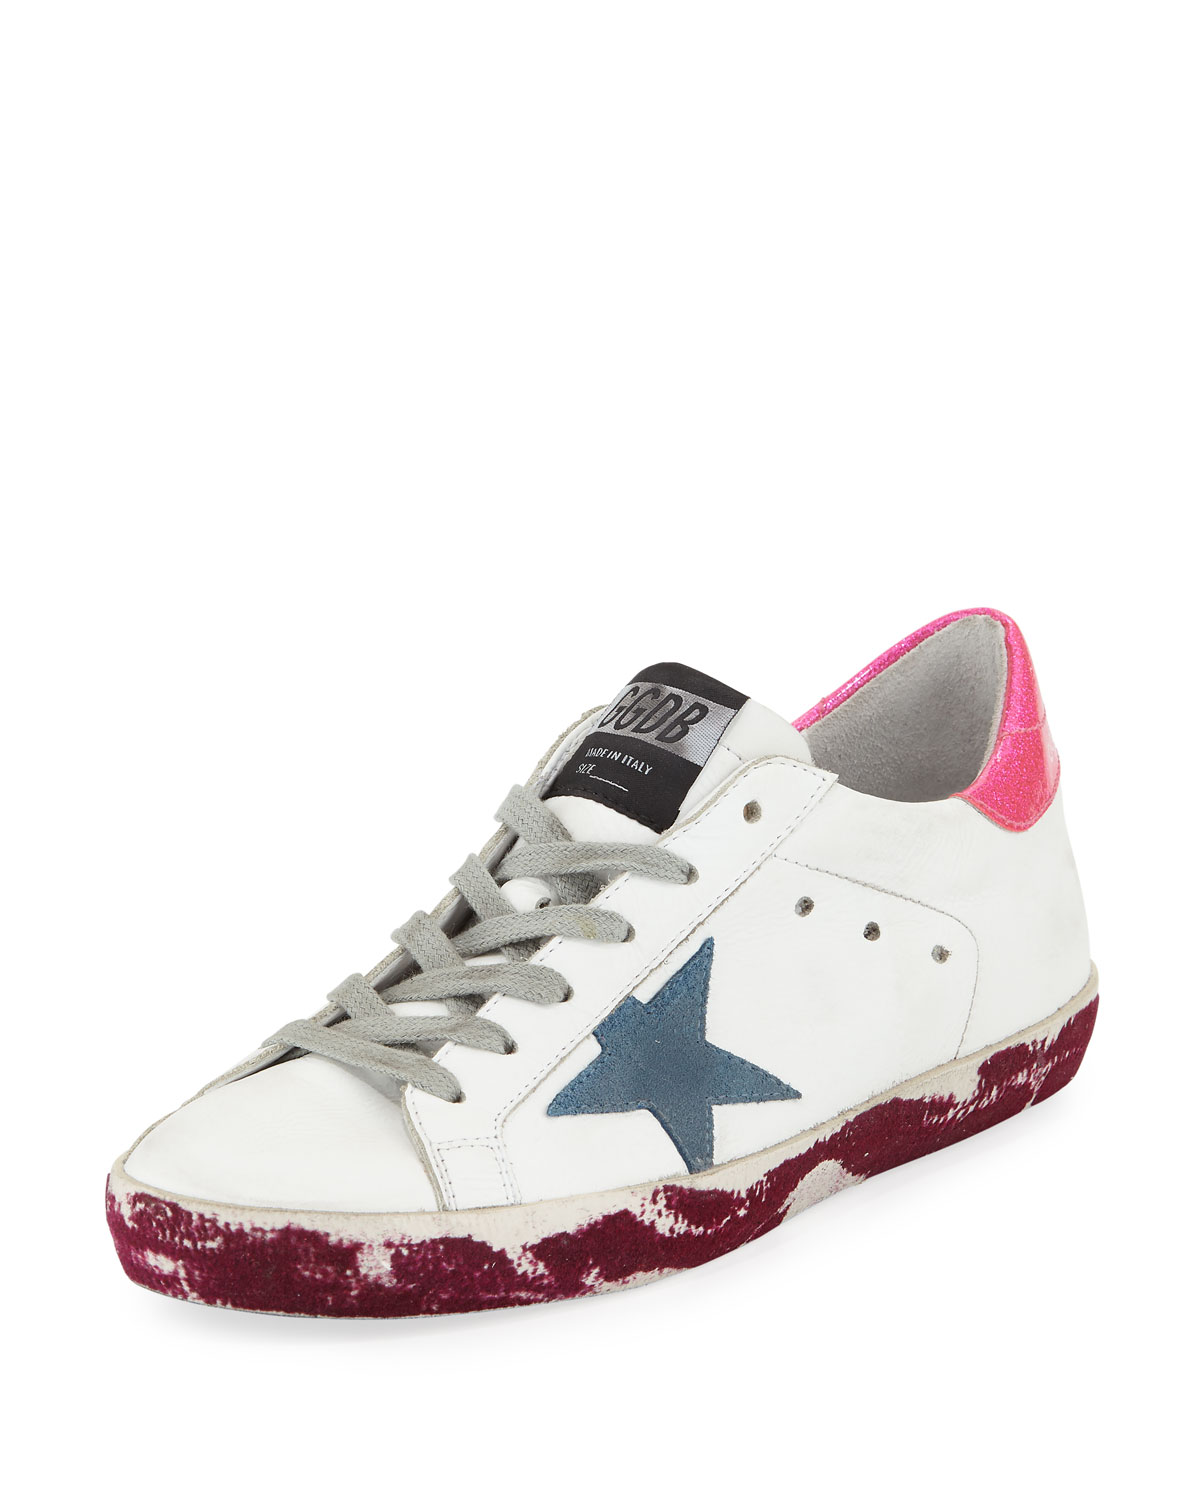 Superstar Paint-Leather Low-Top Platform Sneaker With Suede Star, White/Pink/Purple